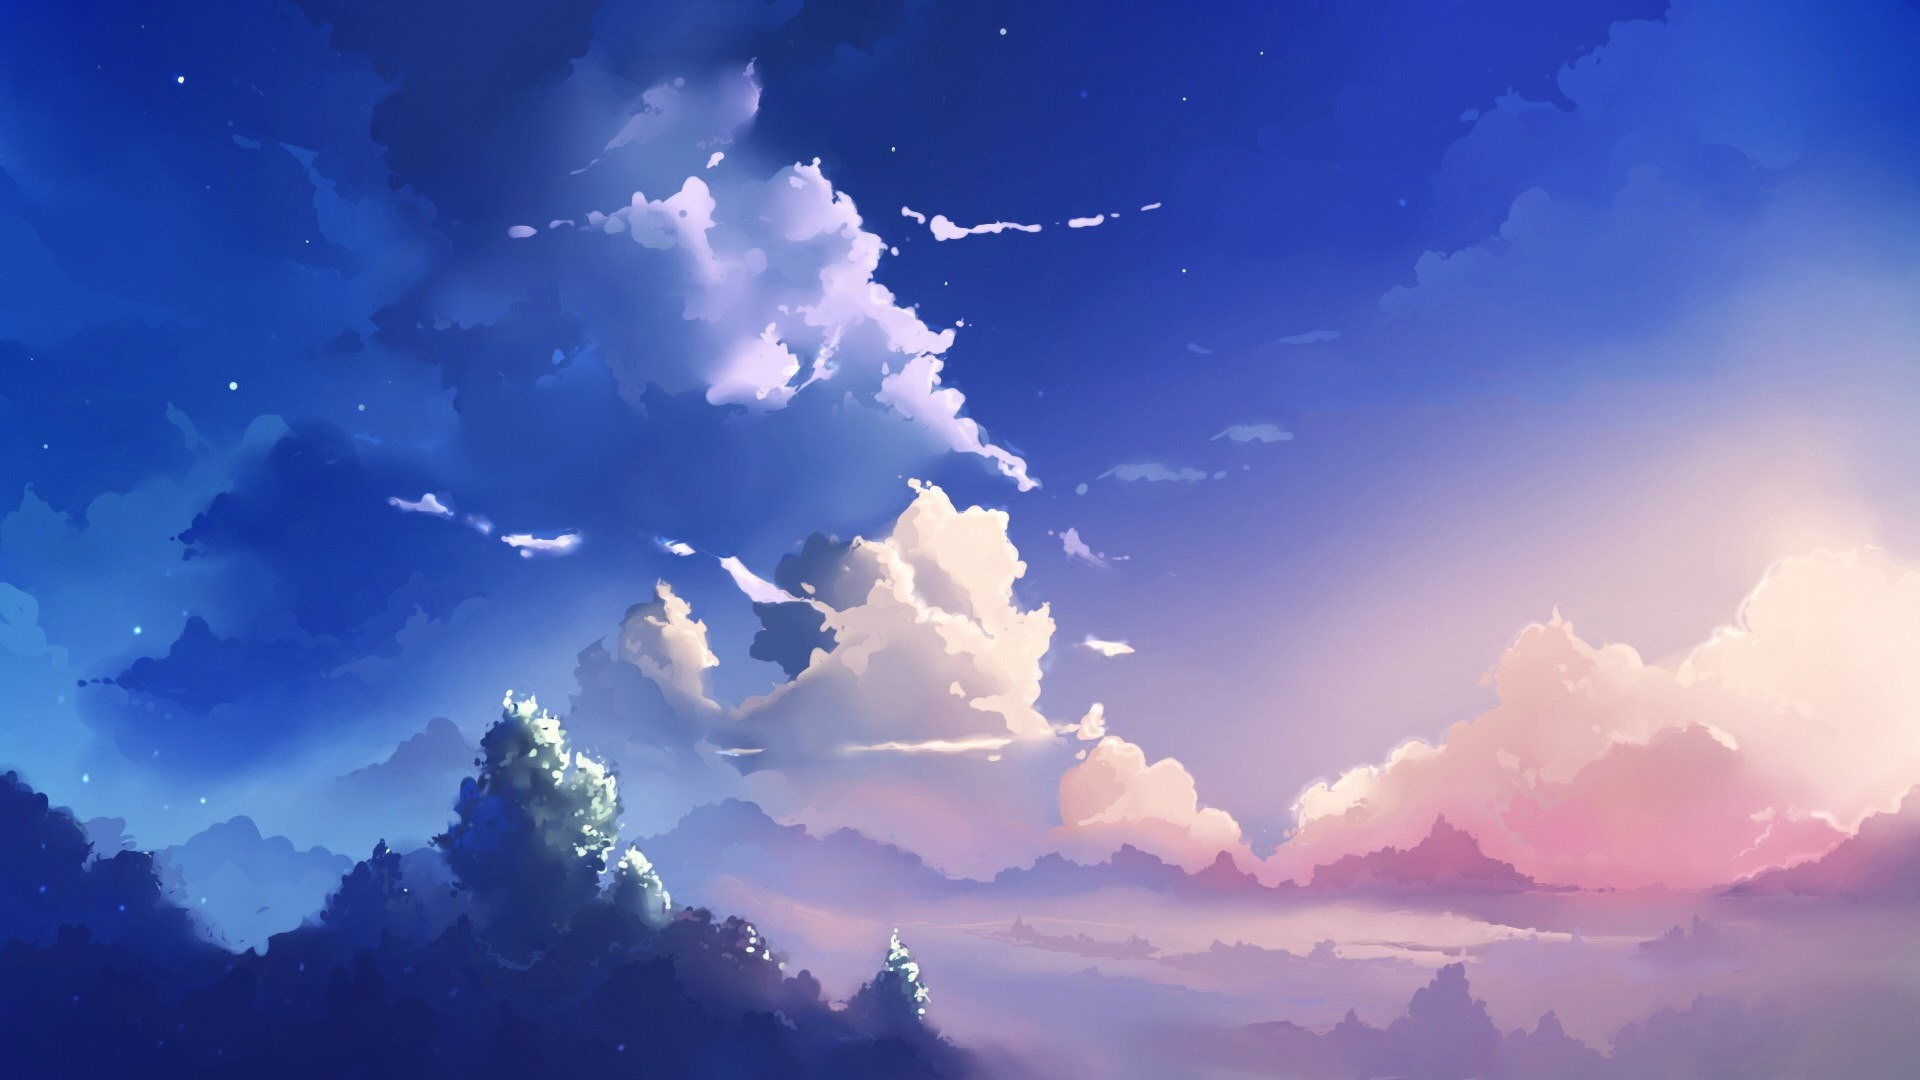 Best Wallpaper Night Aesthetic - 1047385-vertical-anime-wallpapers-1920x1080-1920x1080-for-tablet  Best Photo Reference.jpg